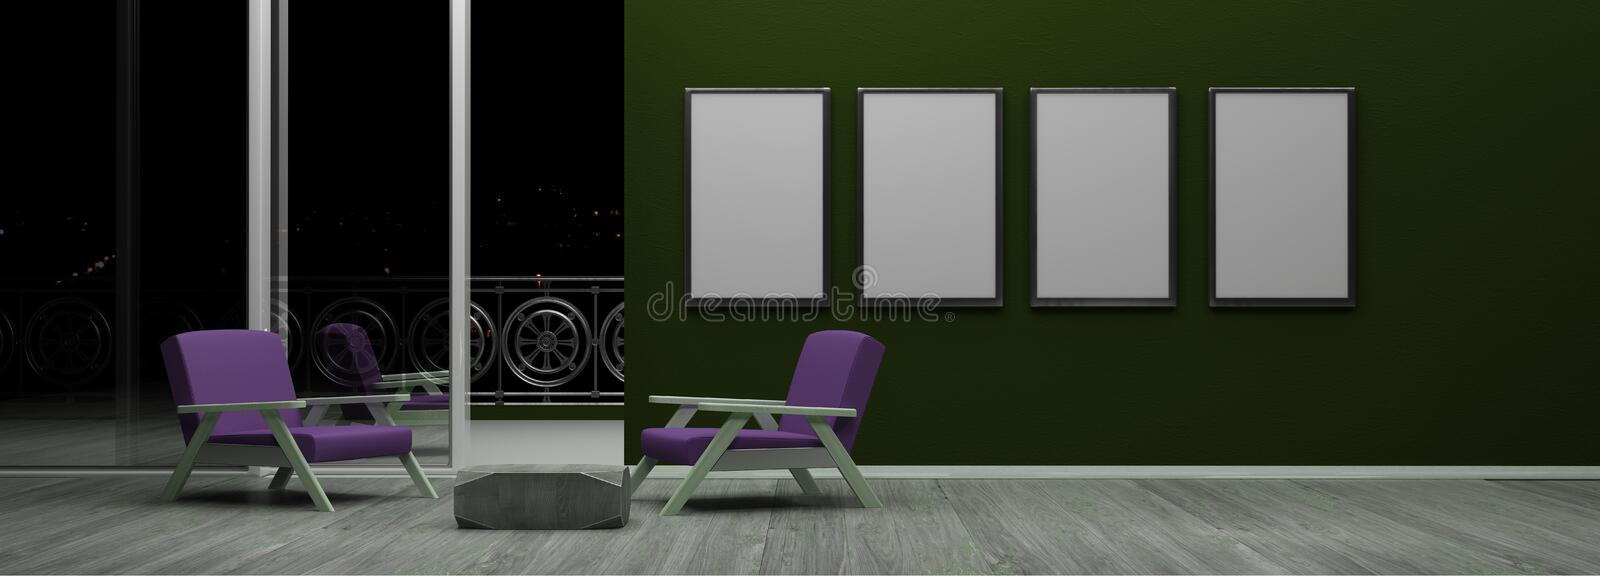 Interior with blank picture frames 3d render. Ing vector illustration